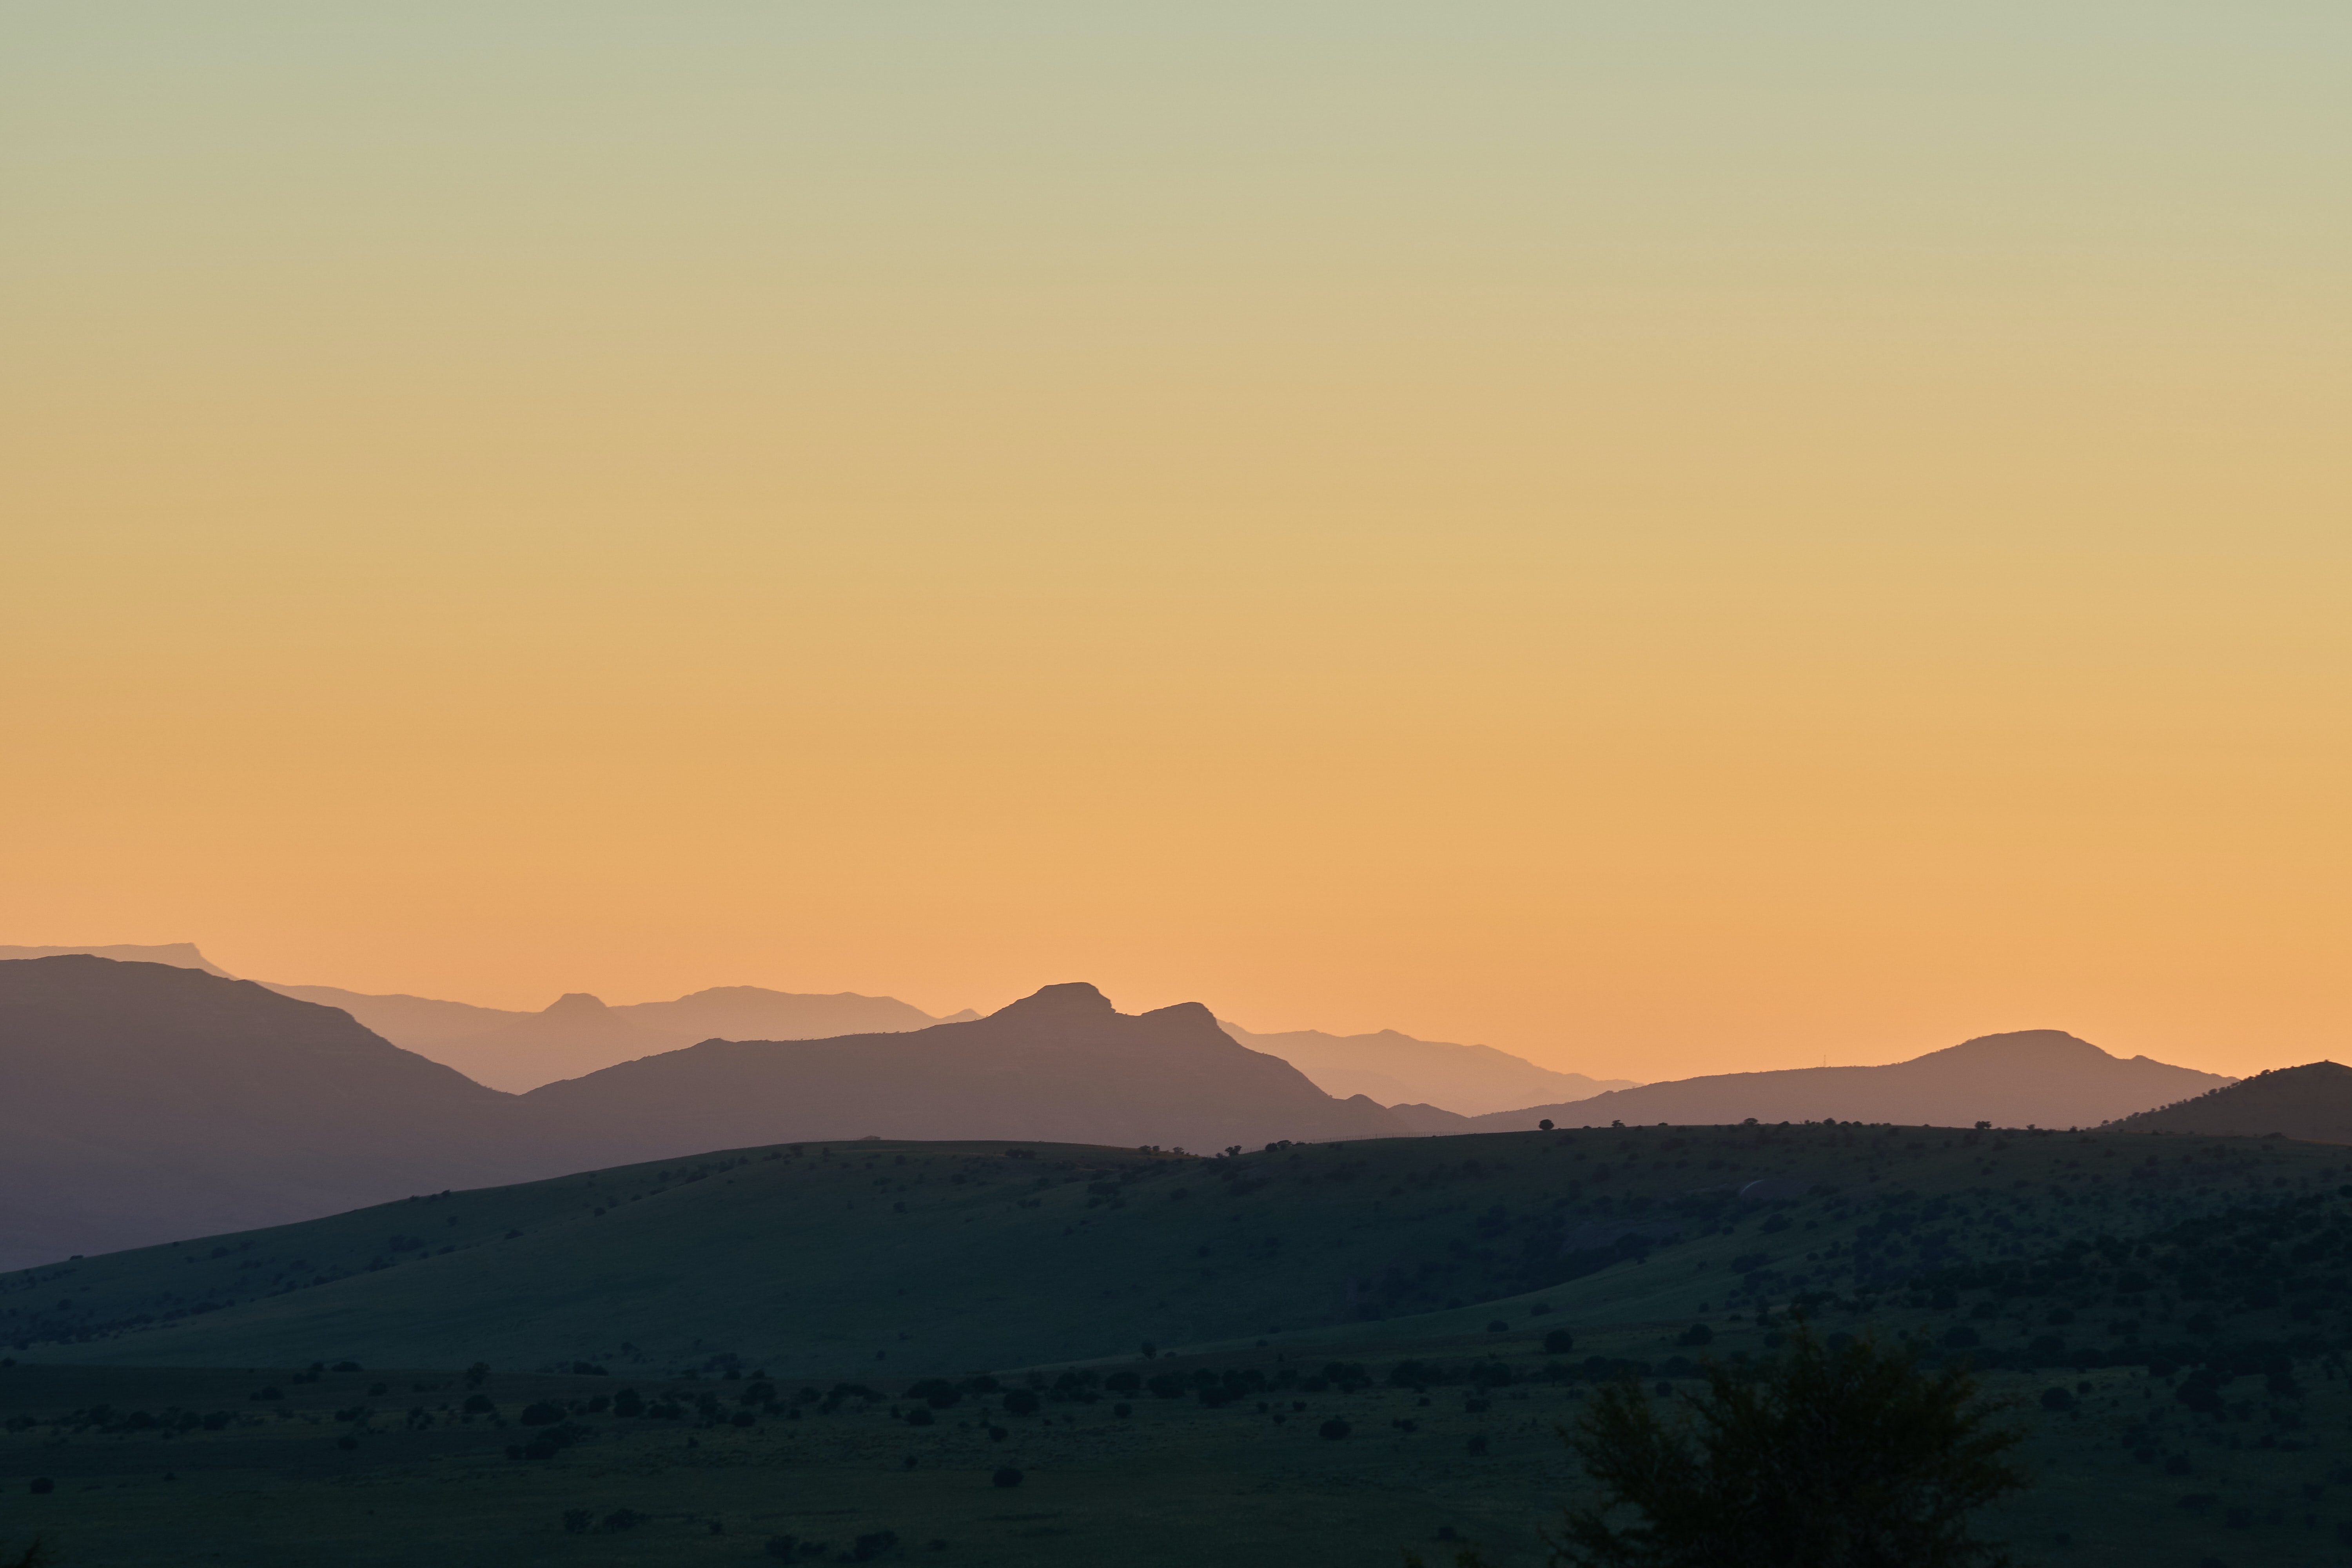 landscape photography of mountains and plain